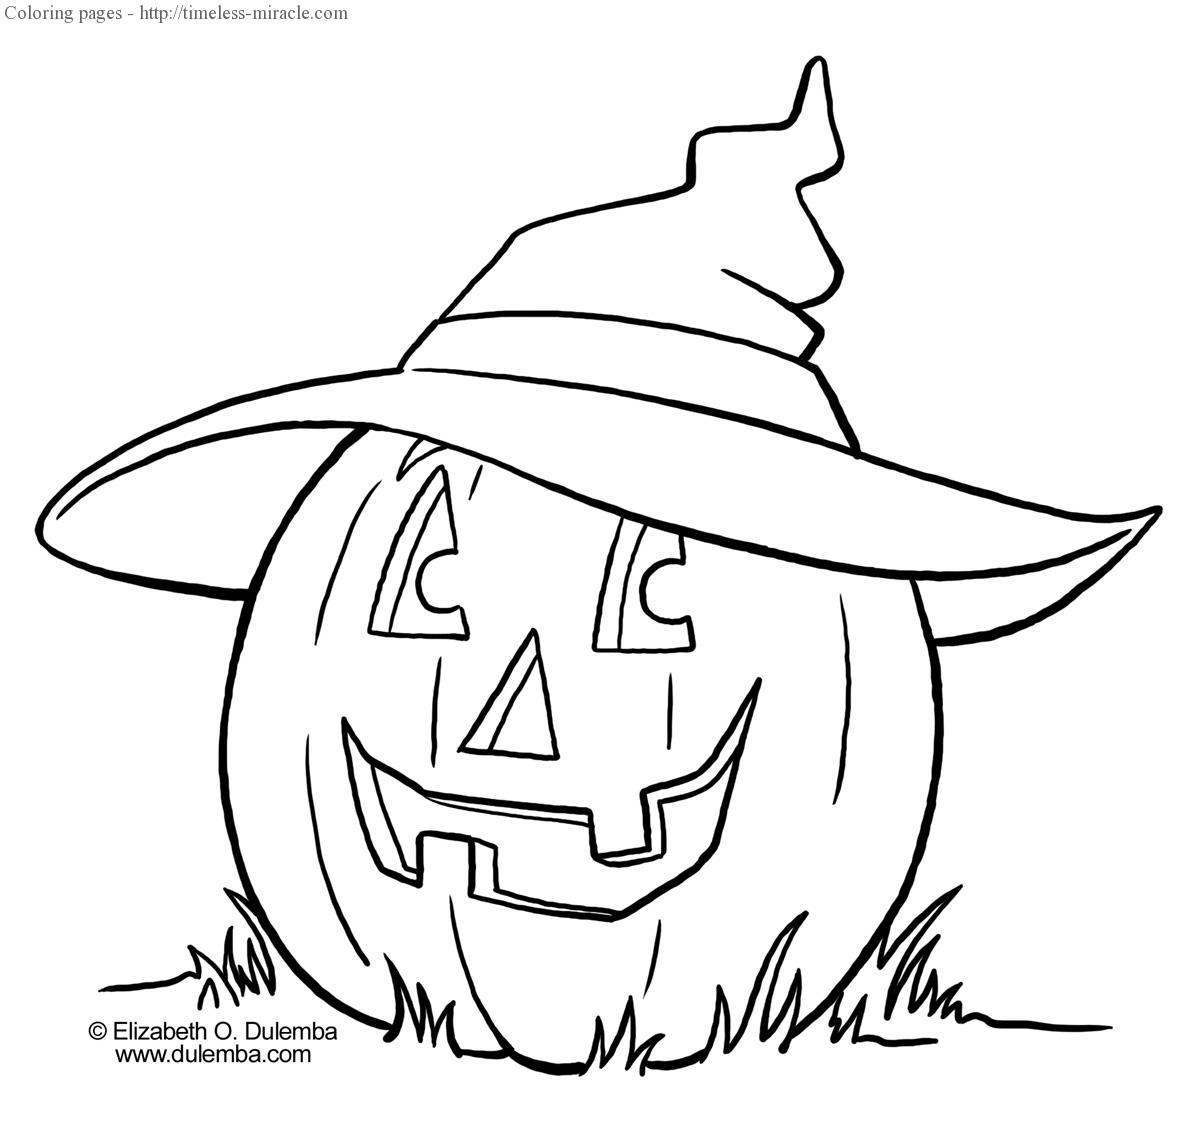 Halloween Coloring Pages Disney Characters (With images) | Disney ... | 1131x1200